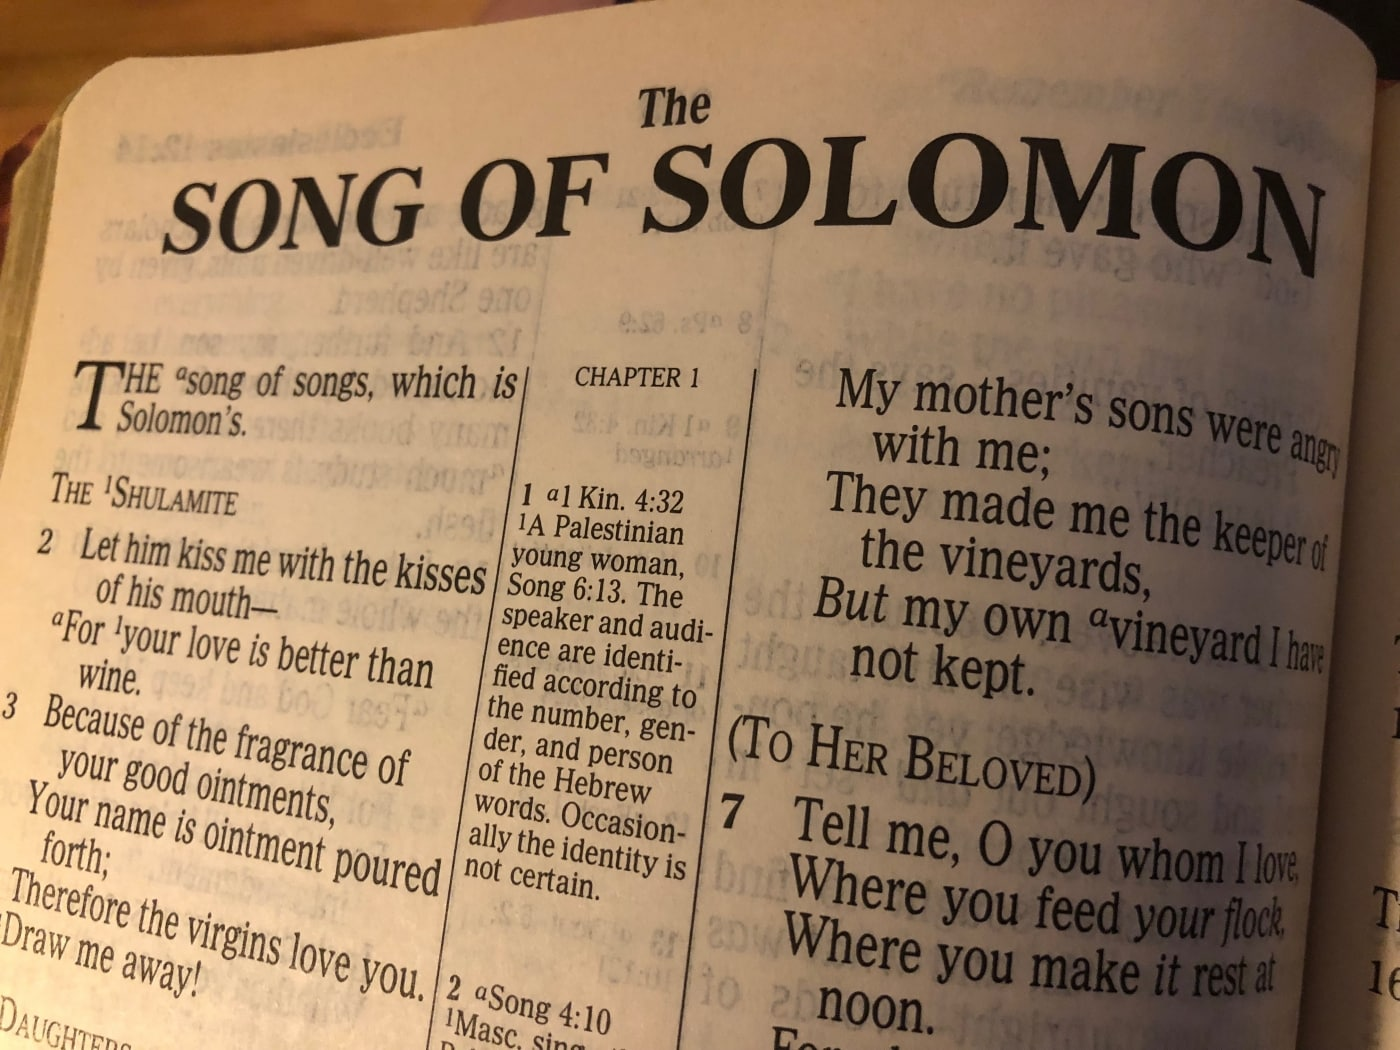 Song of Solomon #8